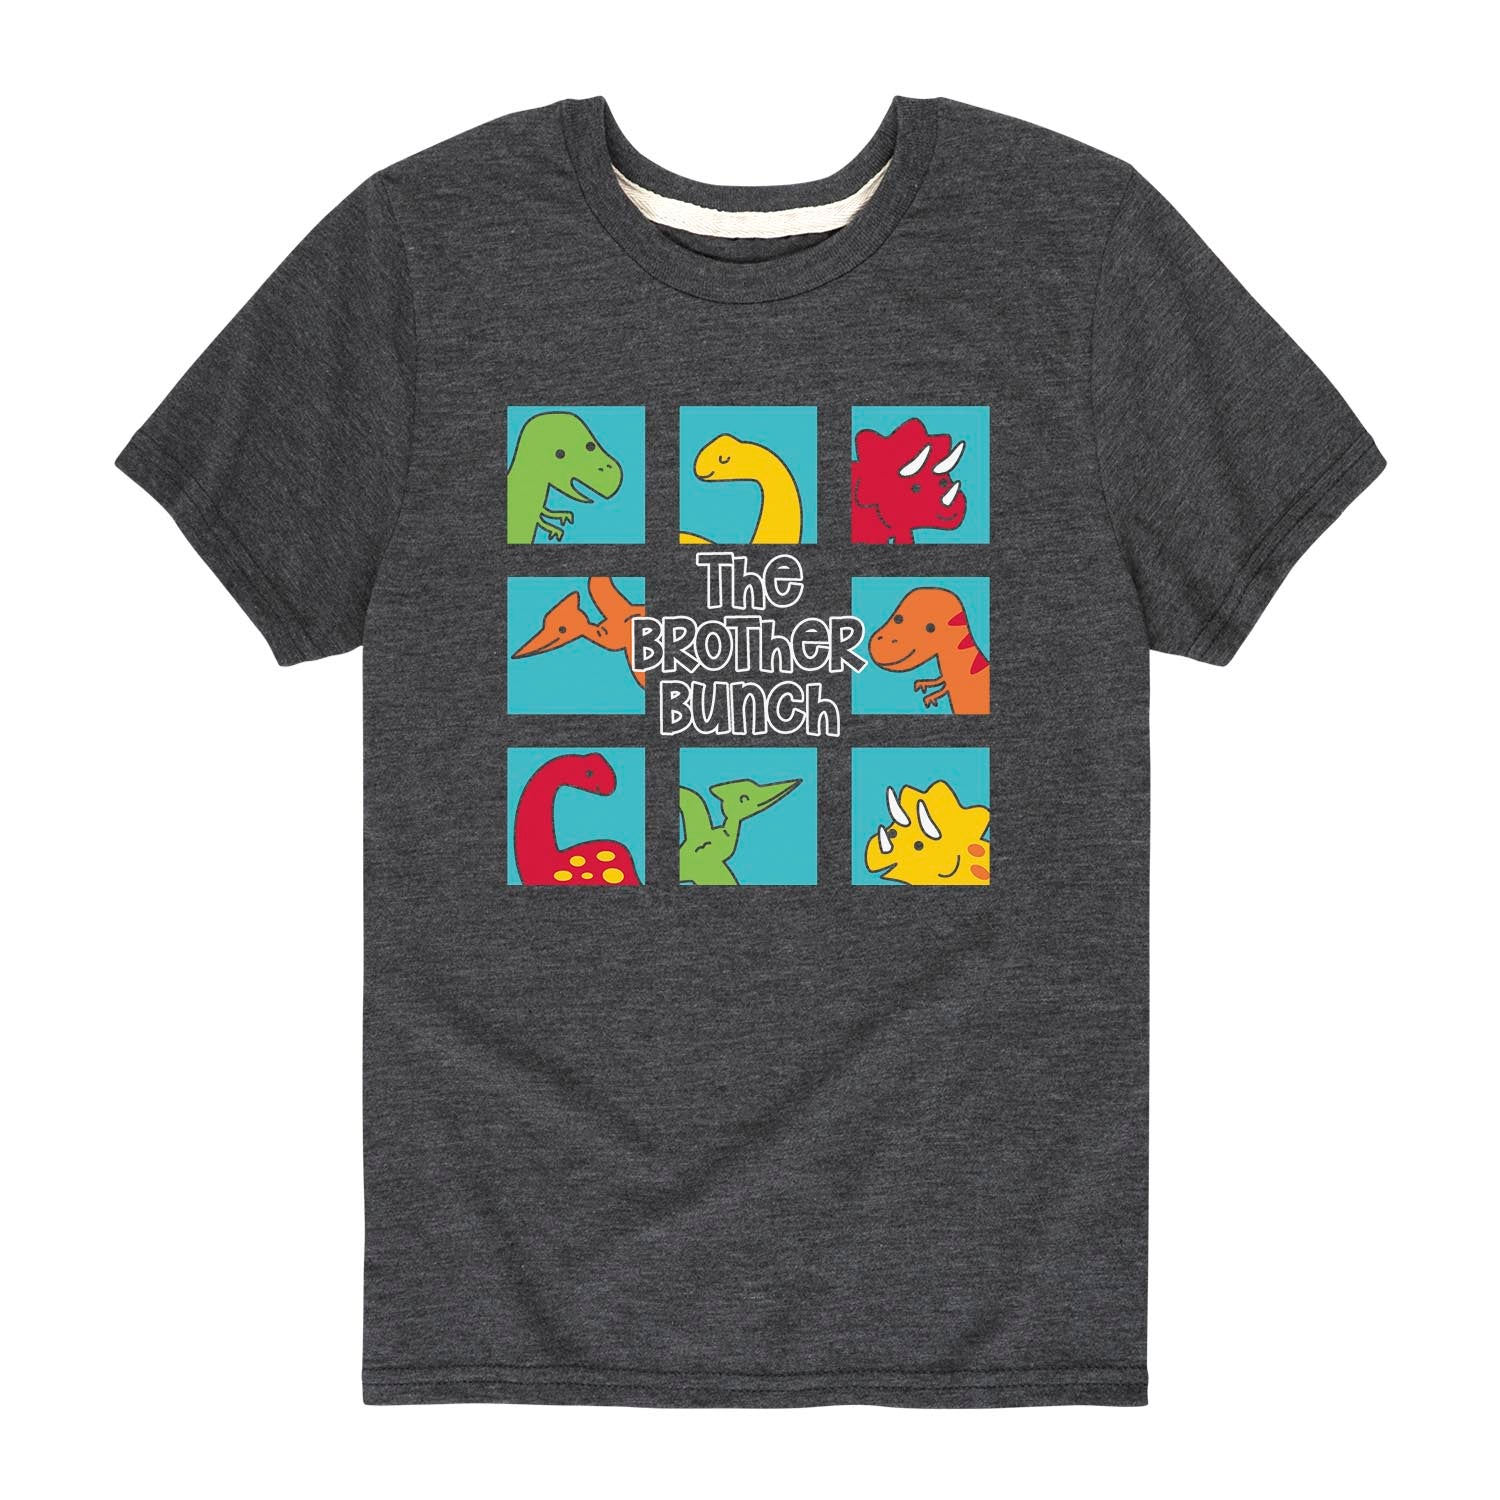 The Brother Bunch - Youth & Toddler Short Sleeve T-Shirt